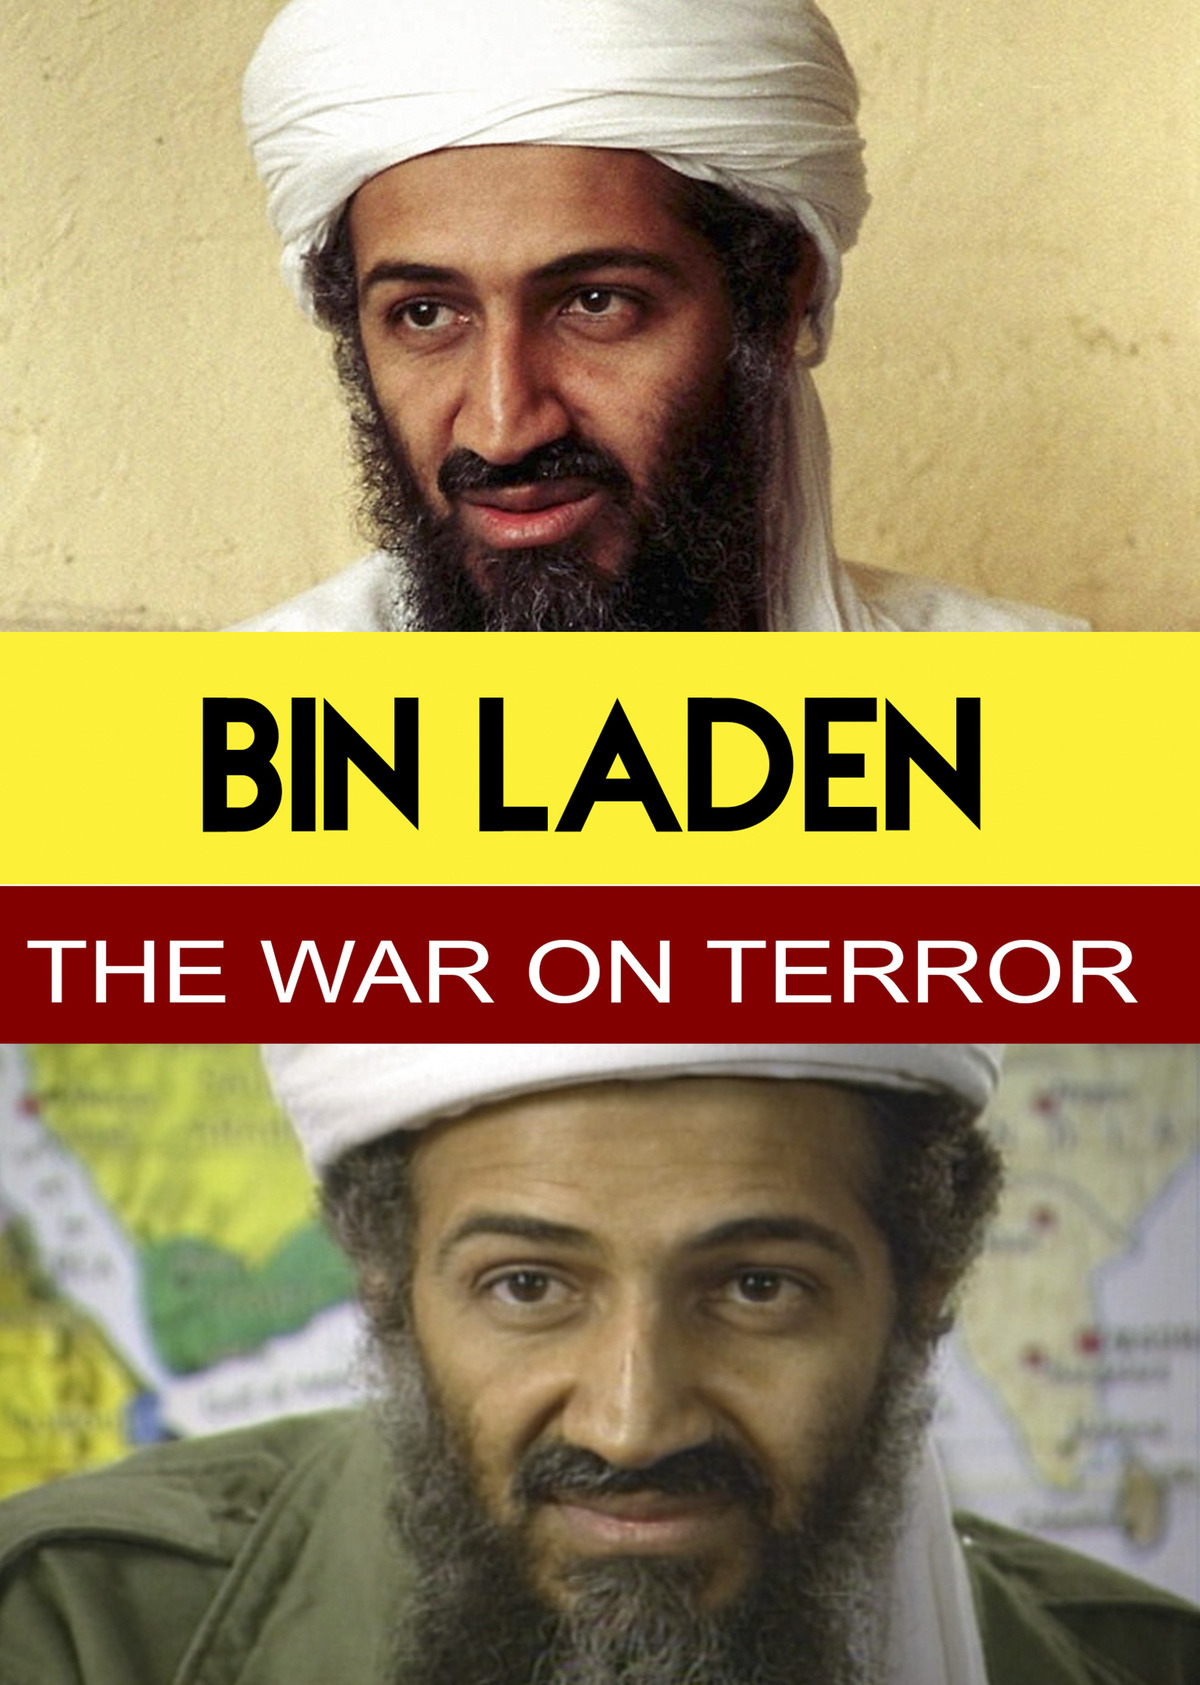 L7819 - Bin Laden - The War on Terror